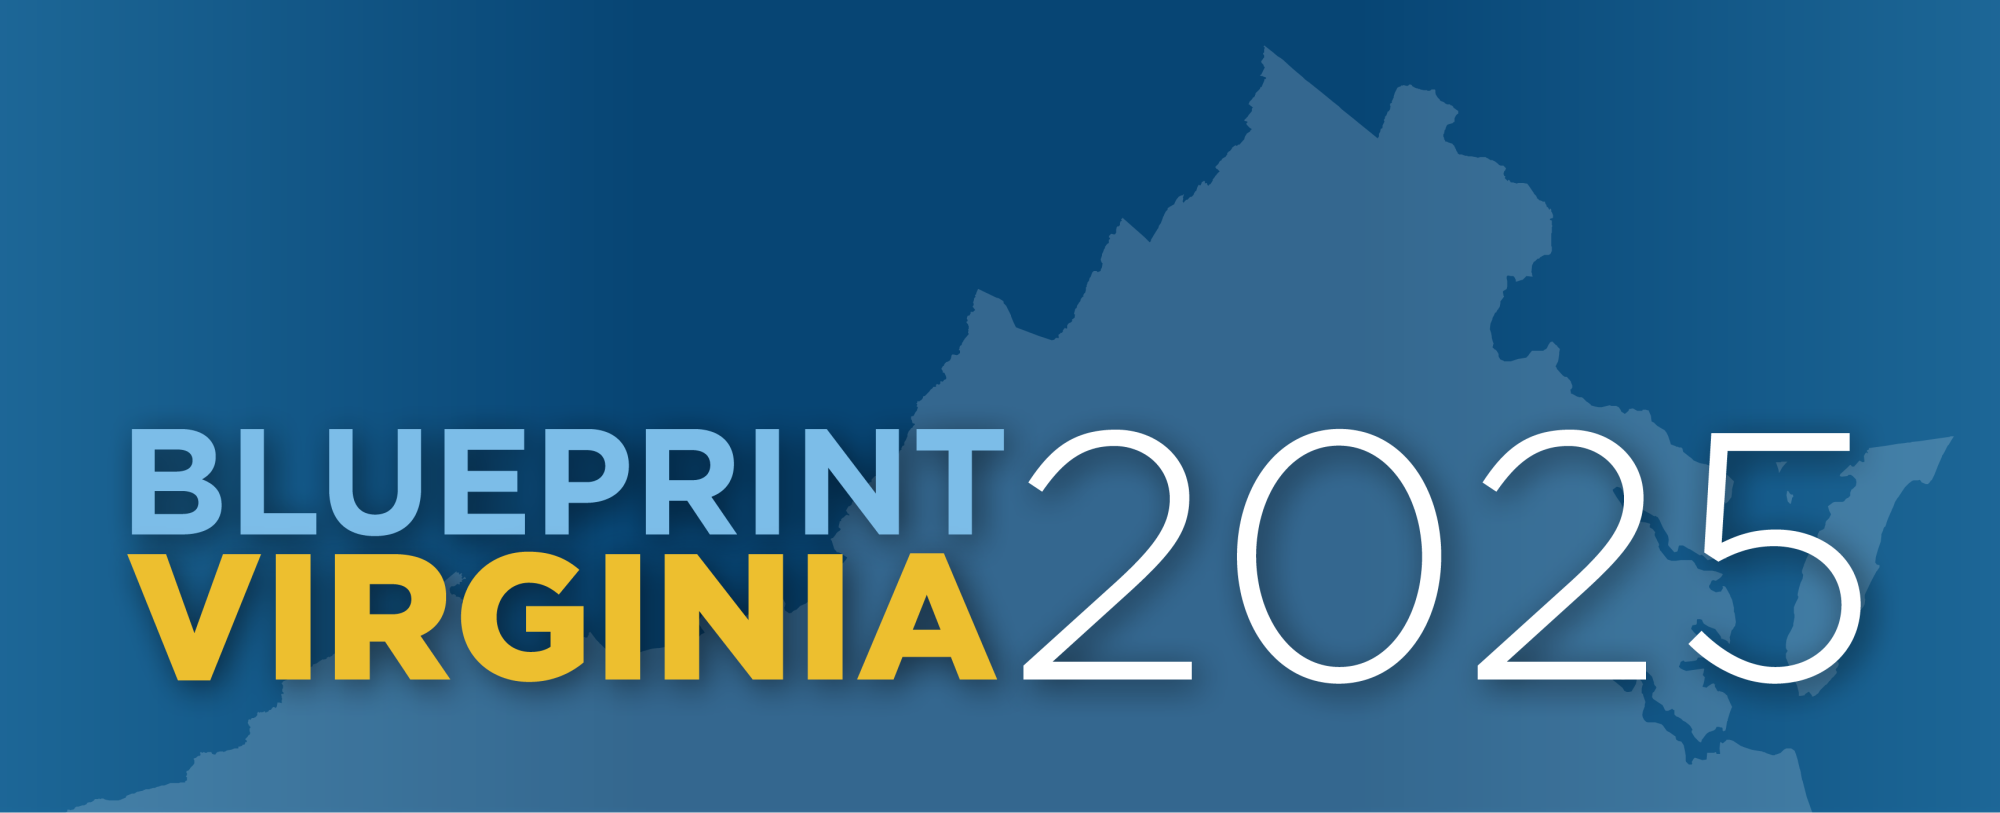 Blueprint Virginia 2025